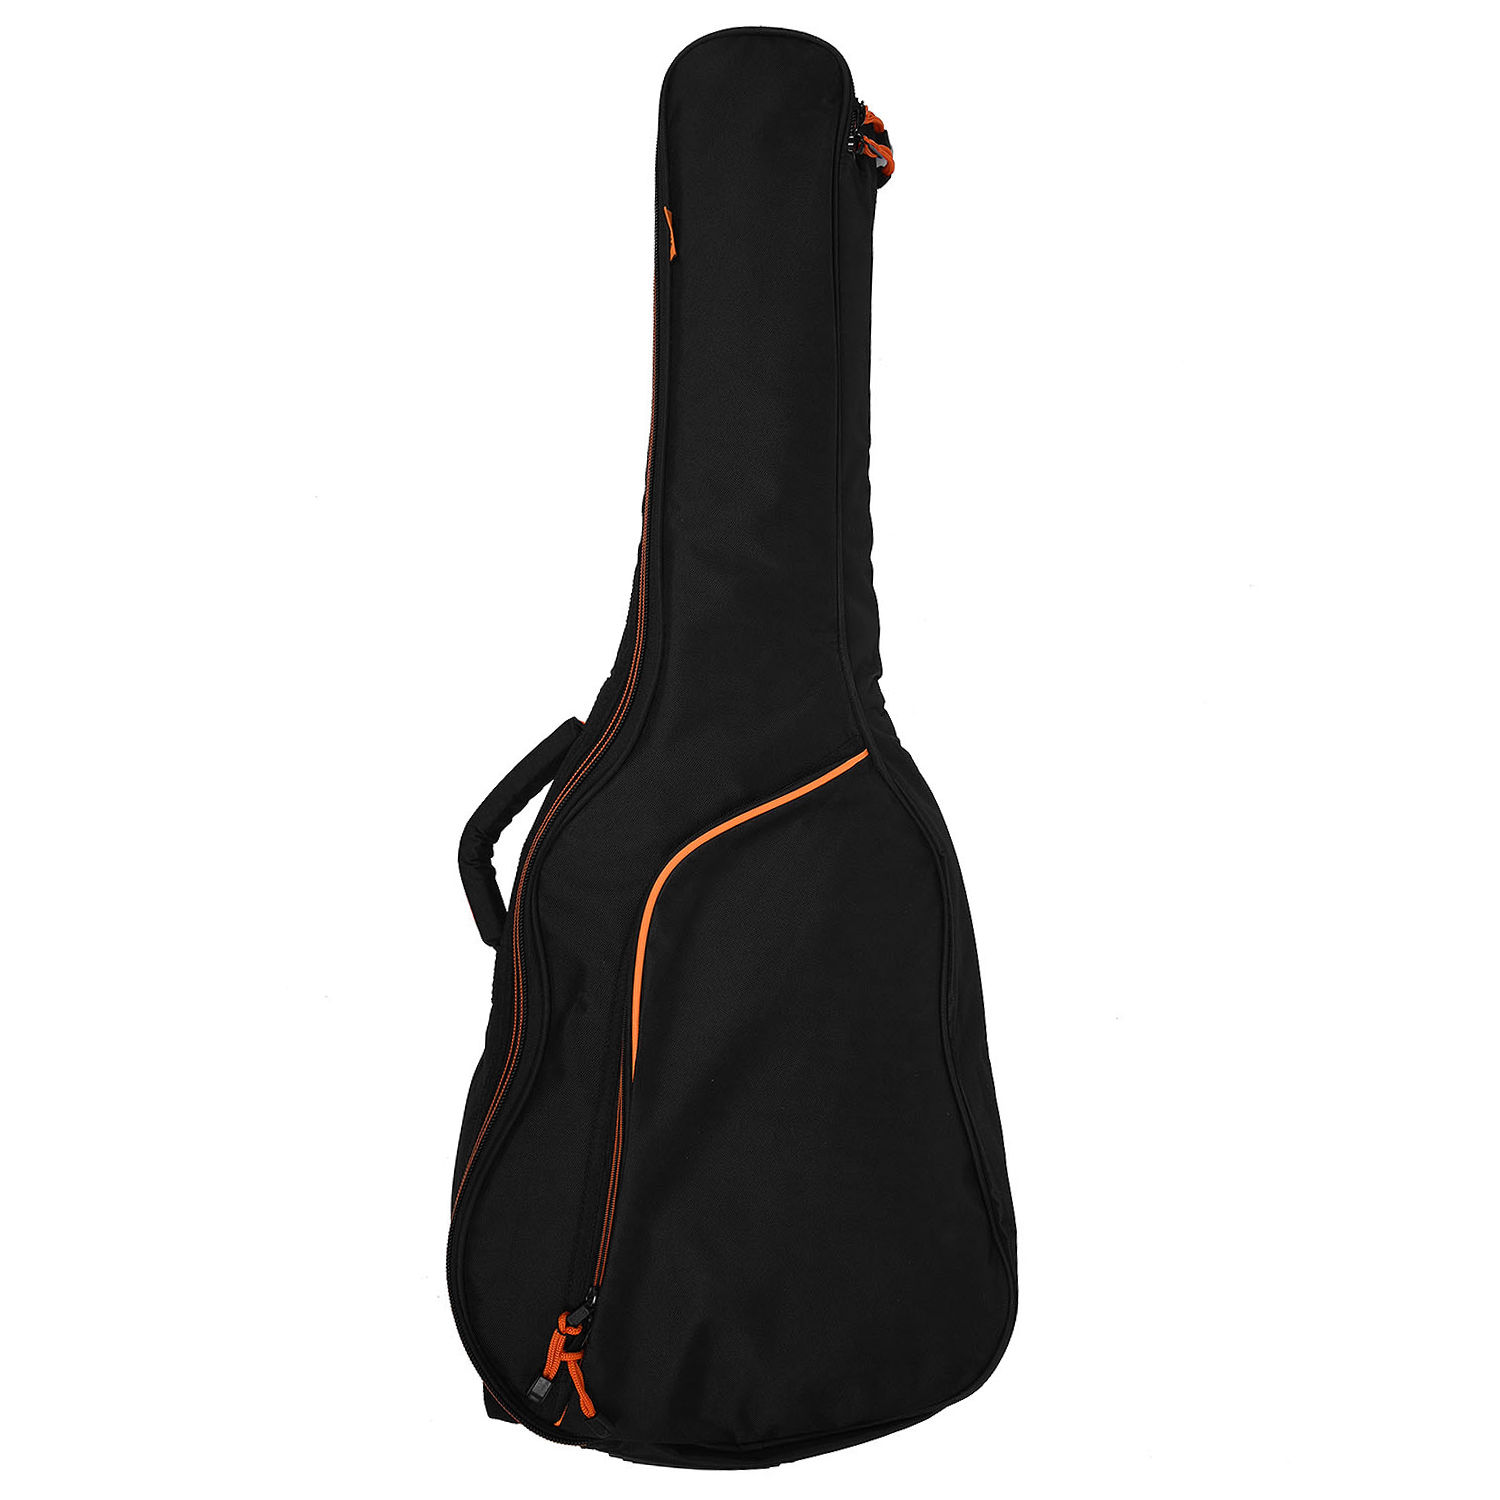 Thicken Steel-String Classical Guitar Bag Case Backpack Guitarra Bass Accessories Parts Carry Gig-MUSIC подвесная люстра lightstar cigno collo 751122